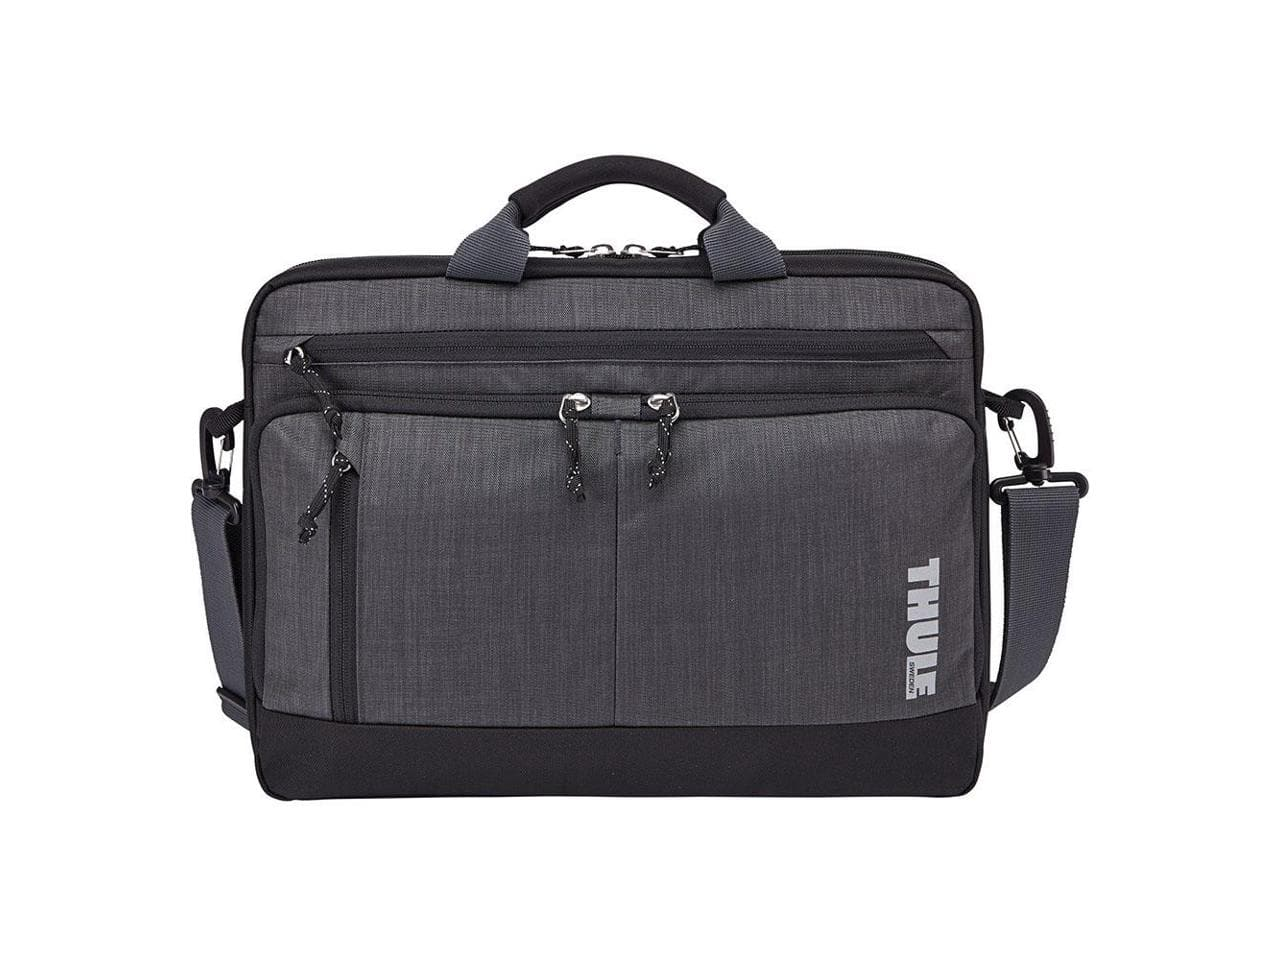 """Thule Messenger/Notebook Carrying Bag for 13"""" Laptop (Gray) $20.99 + Free Shipping via Newegg"""